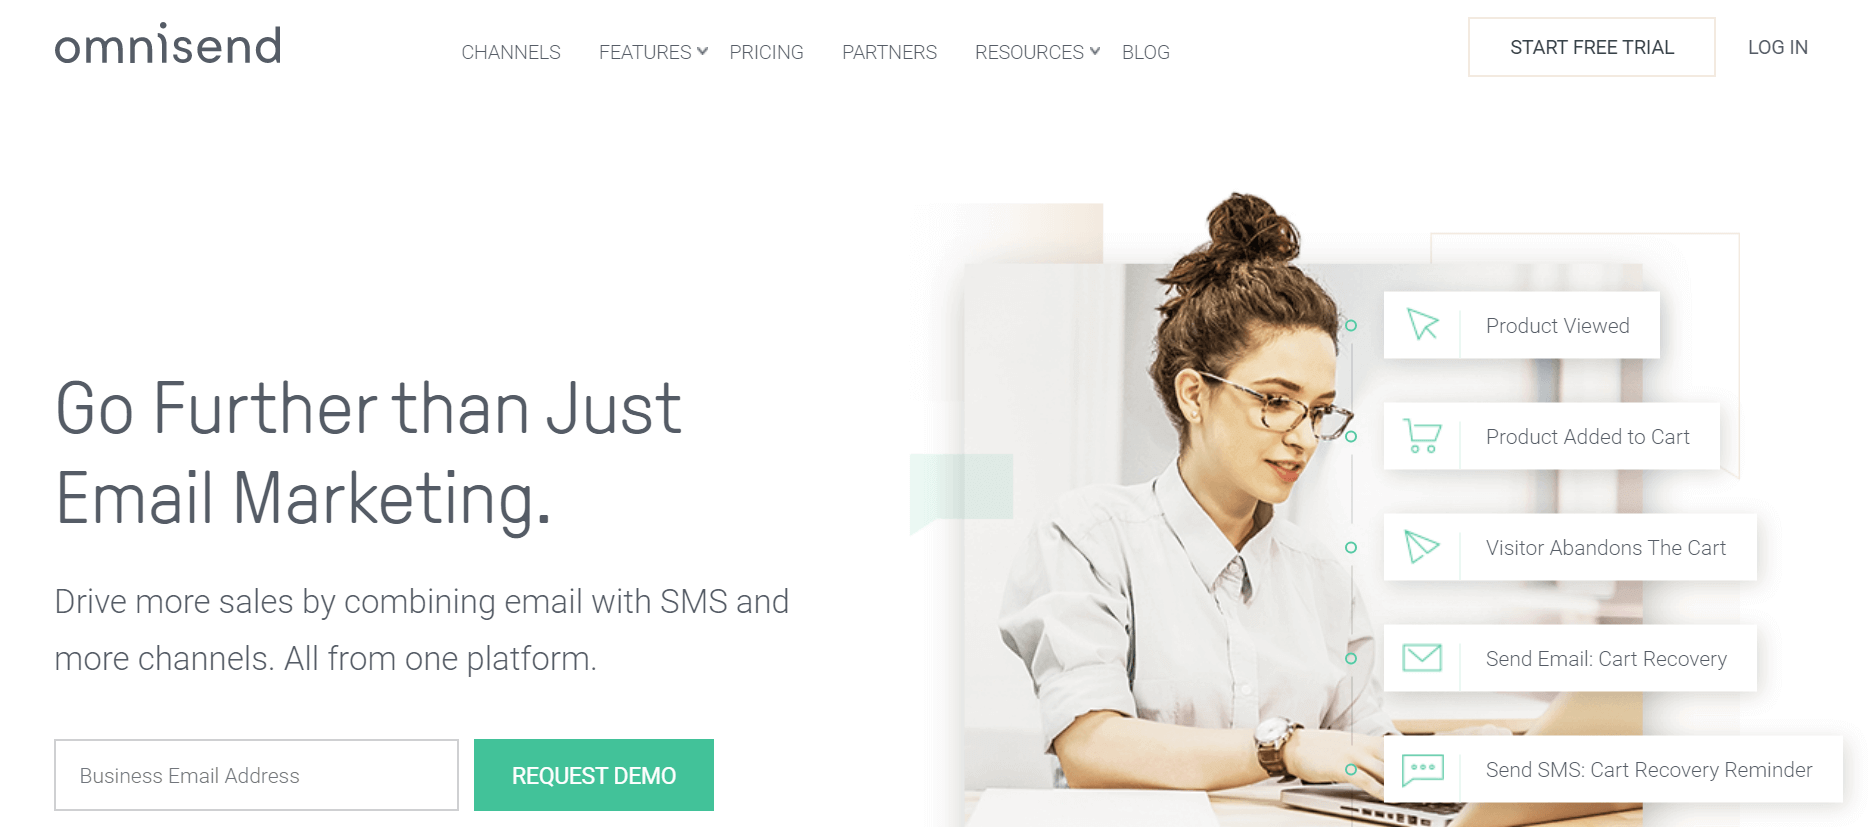 omnisend-email-marketing-service